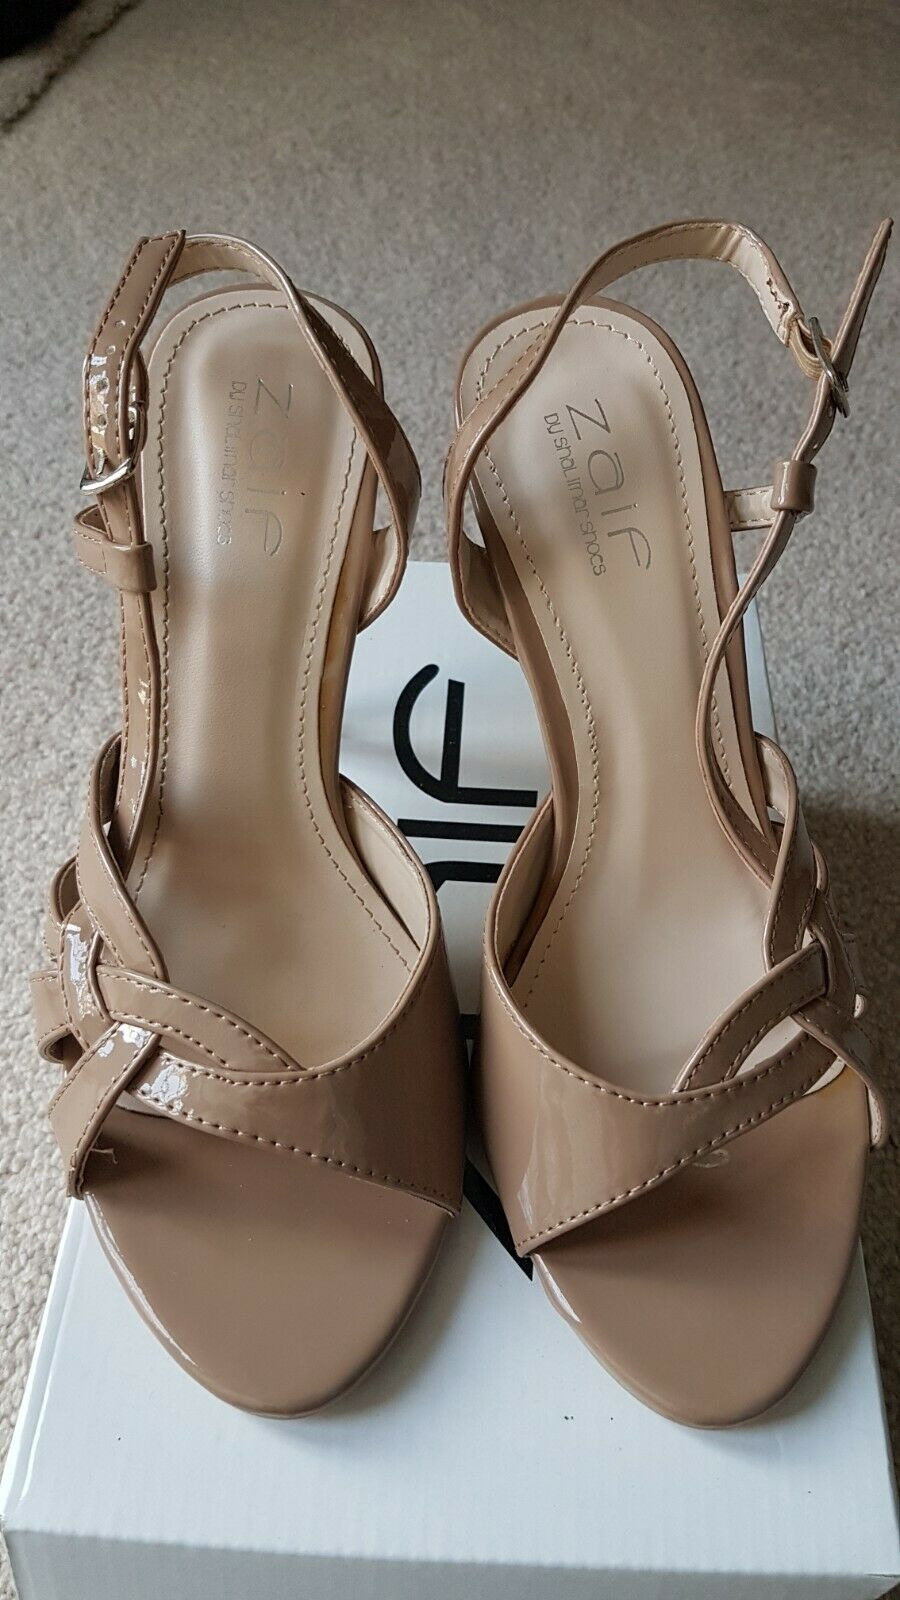 Nude Shiny strappy Heels size 5 BRAND NEW BOXED only !